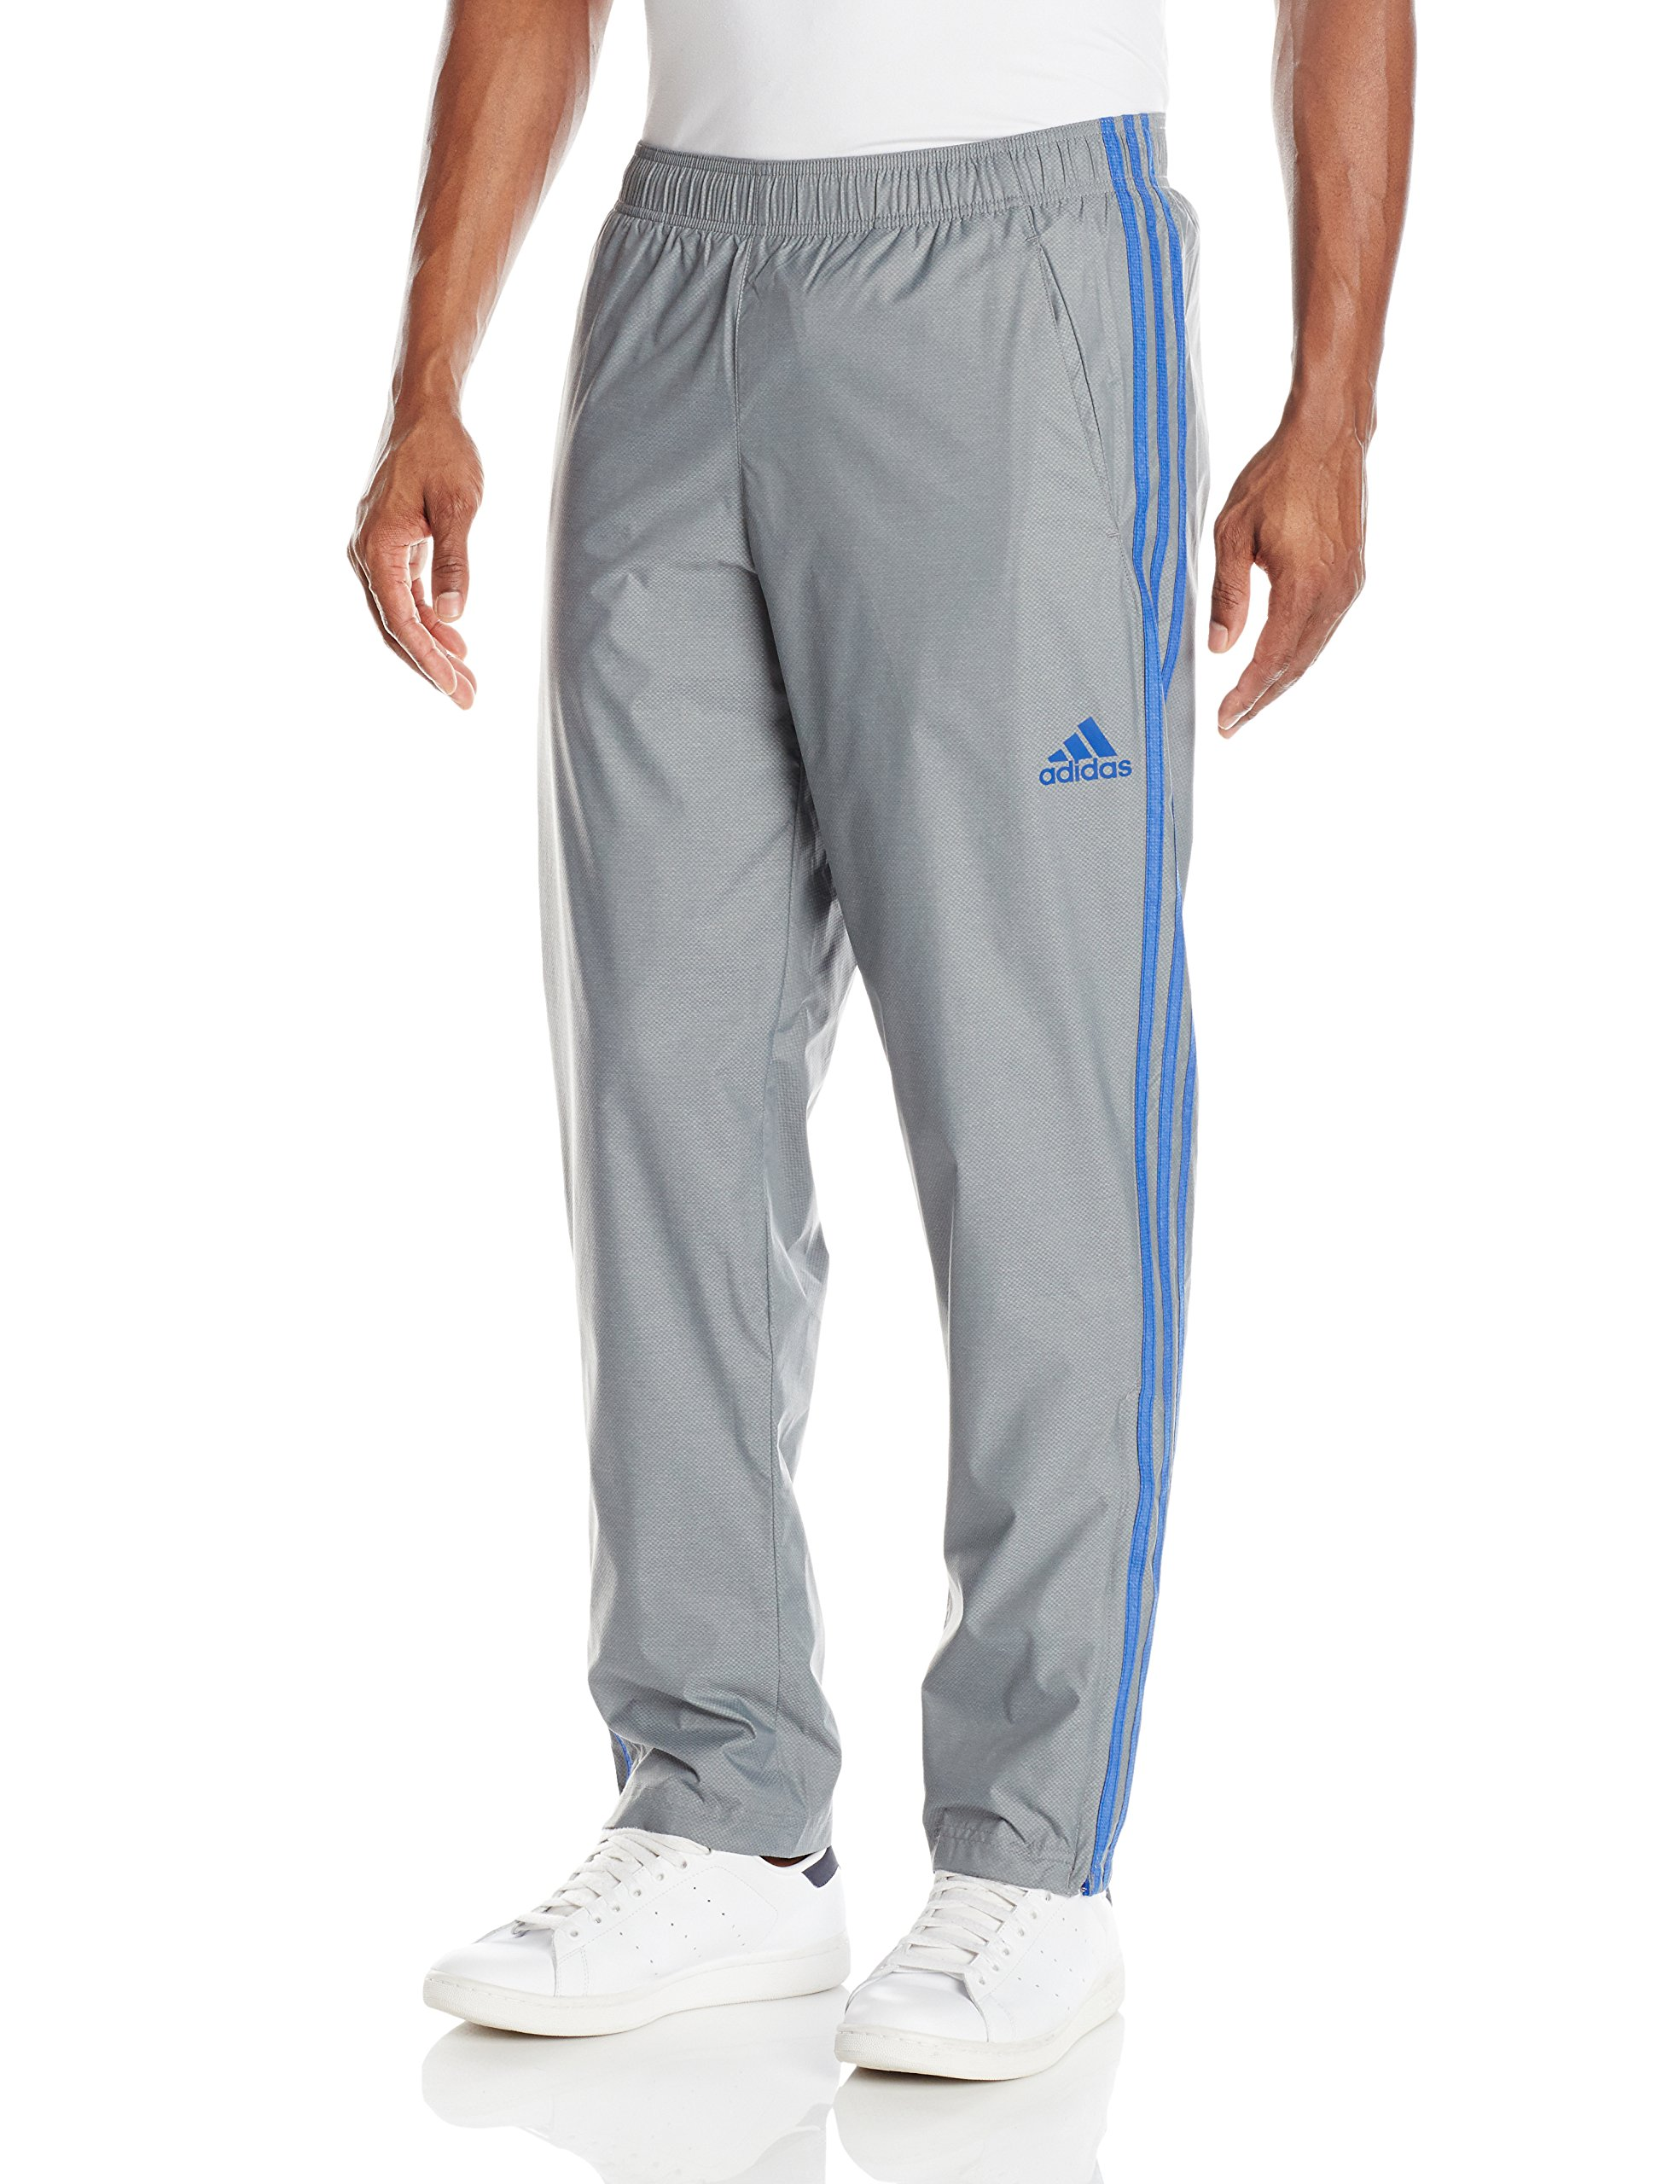 adidas Men's Athletics Essential Pants, Vista Grey/Collegiate Royal, XX-Large by adidas